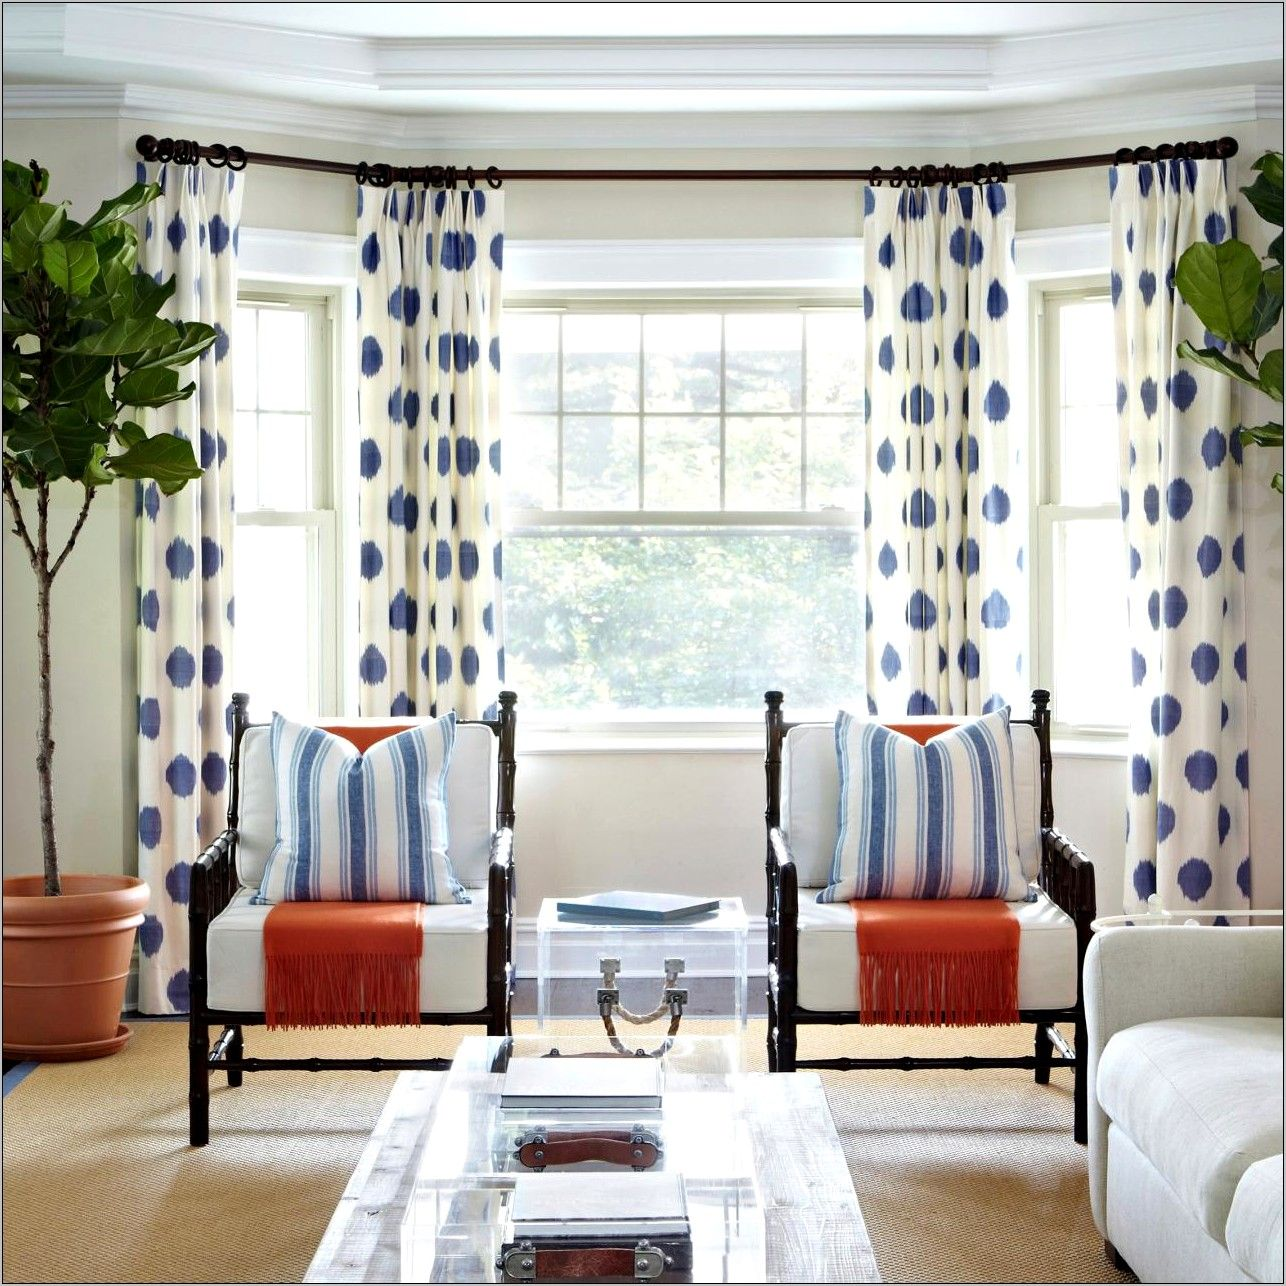 Awesome Curtain Ideas For Bay Window Living Room Eclectic: Decorator Dining Room Wiht Orange Drapes In 2020